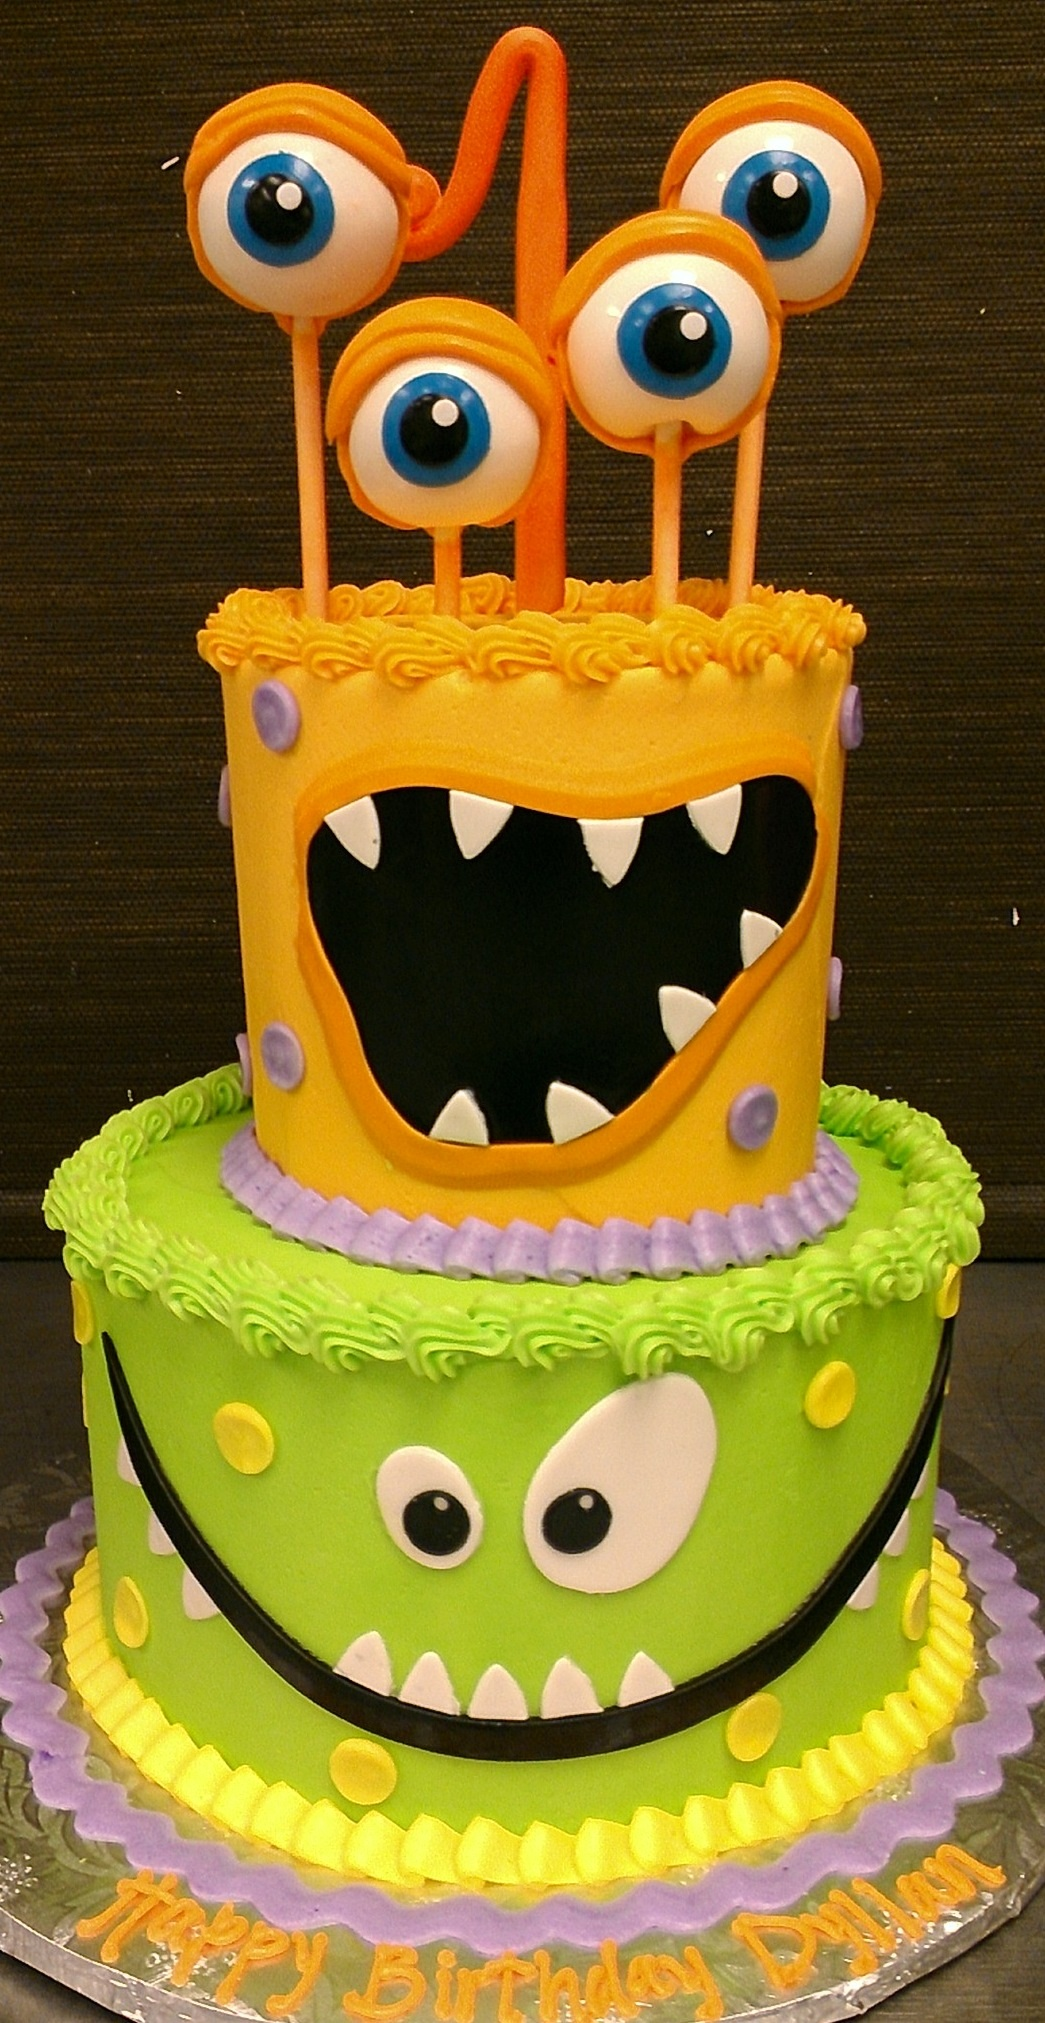 12 Monster Inc Birthday Cakes And Cupcakes For 2 Years Old Boy Photo